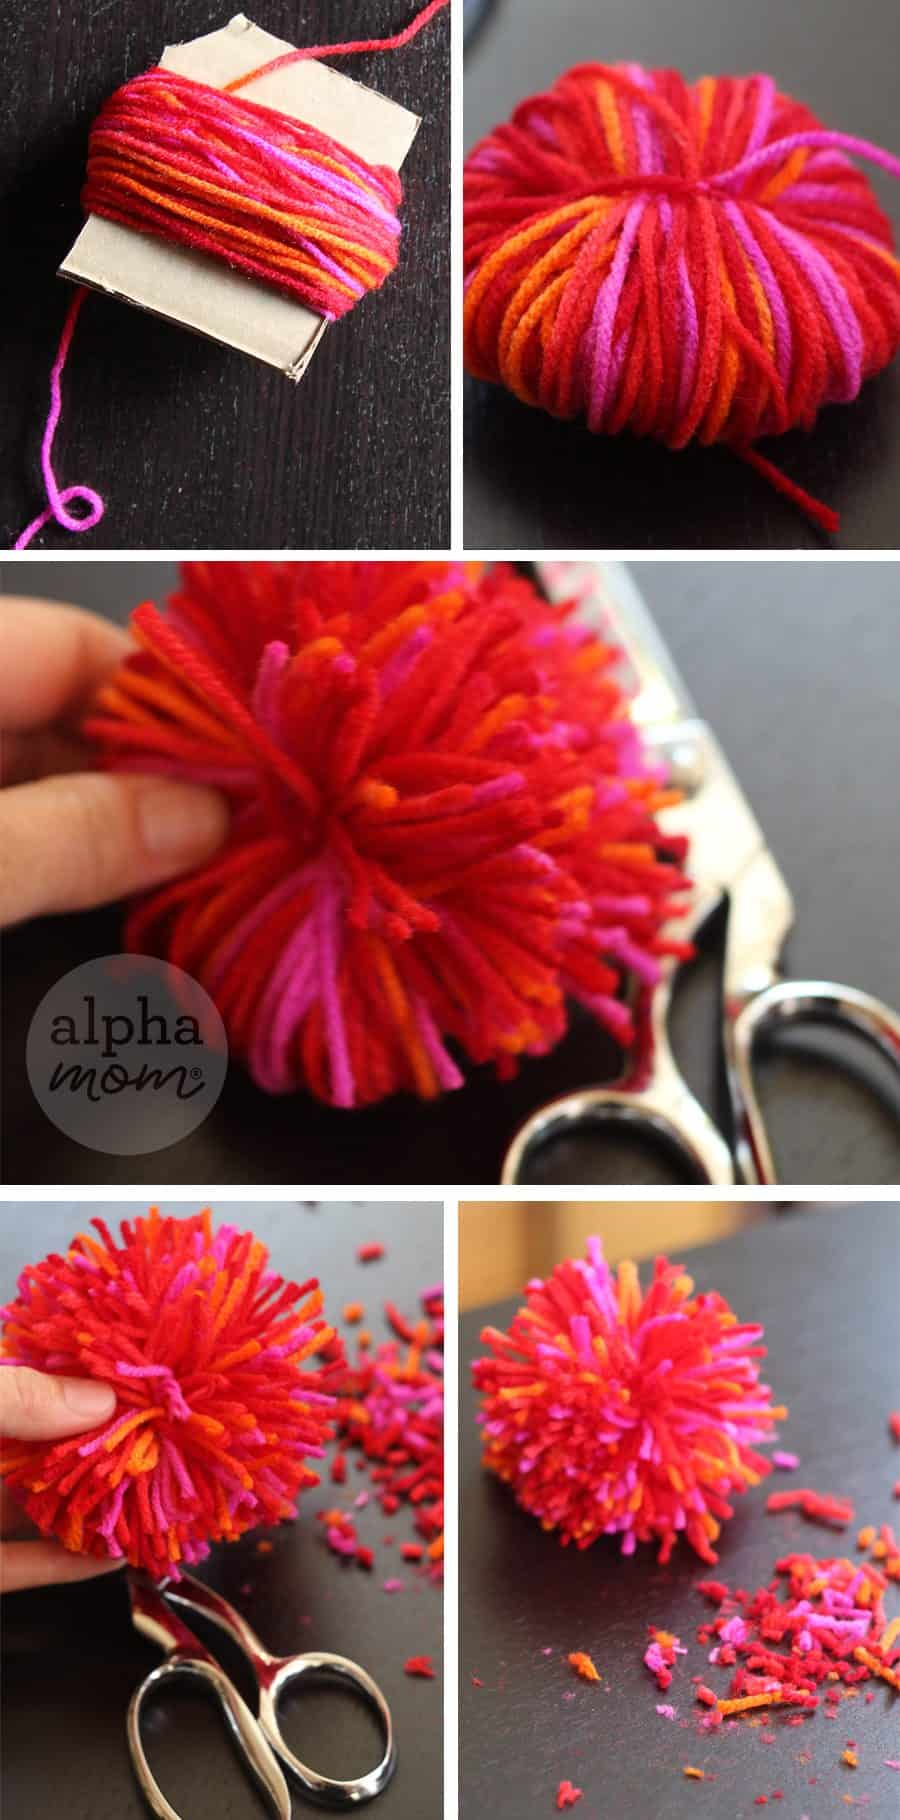 making pom poms out of yard and cardboard